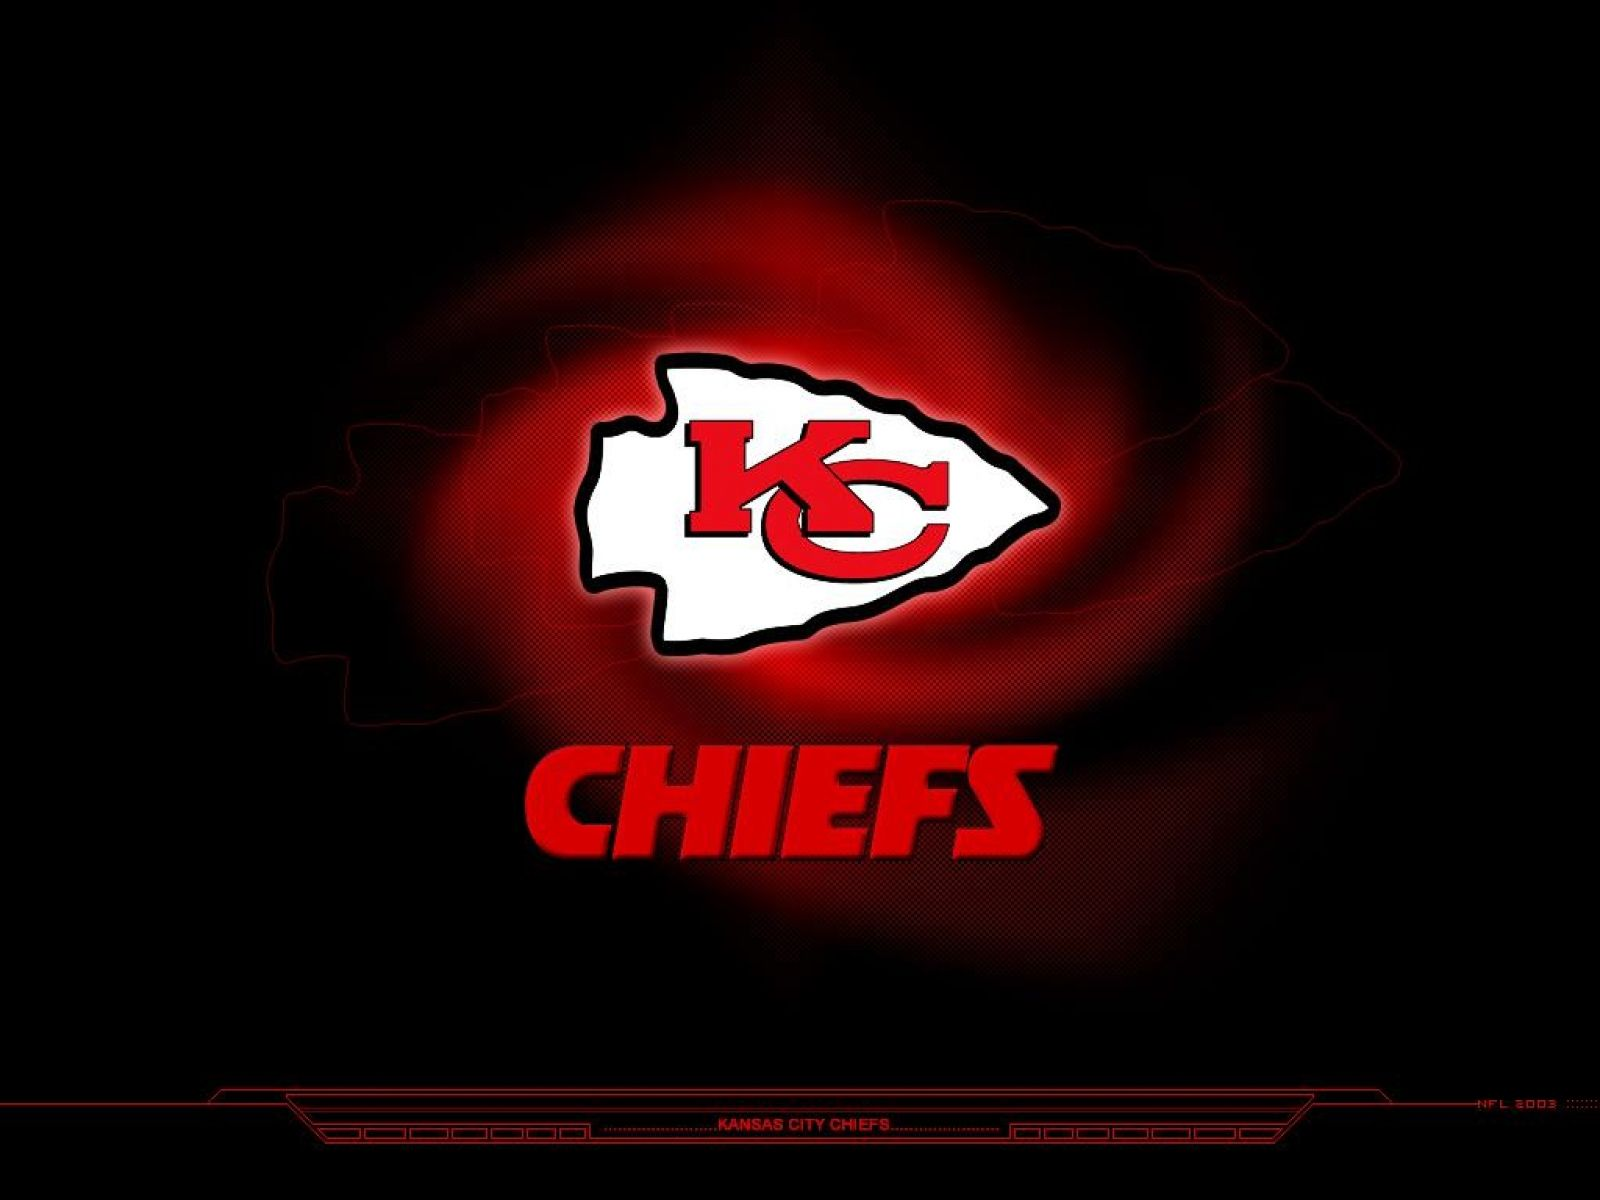 Pin By Kimberly Smith On Kansas Chiefs In 2020 Chiefs Wallpaper Kansas City Chiefs Team Wallpaper